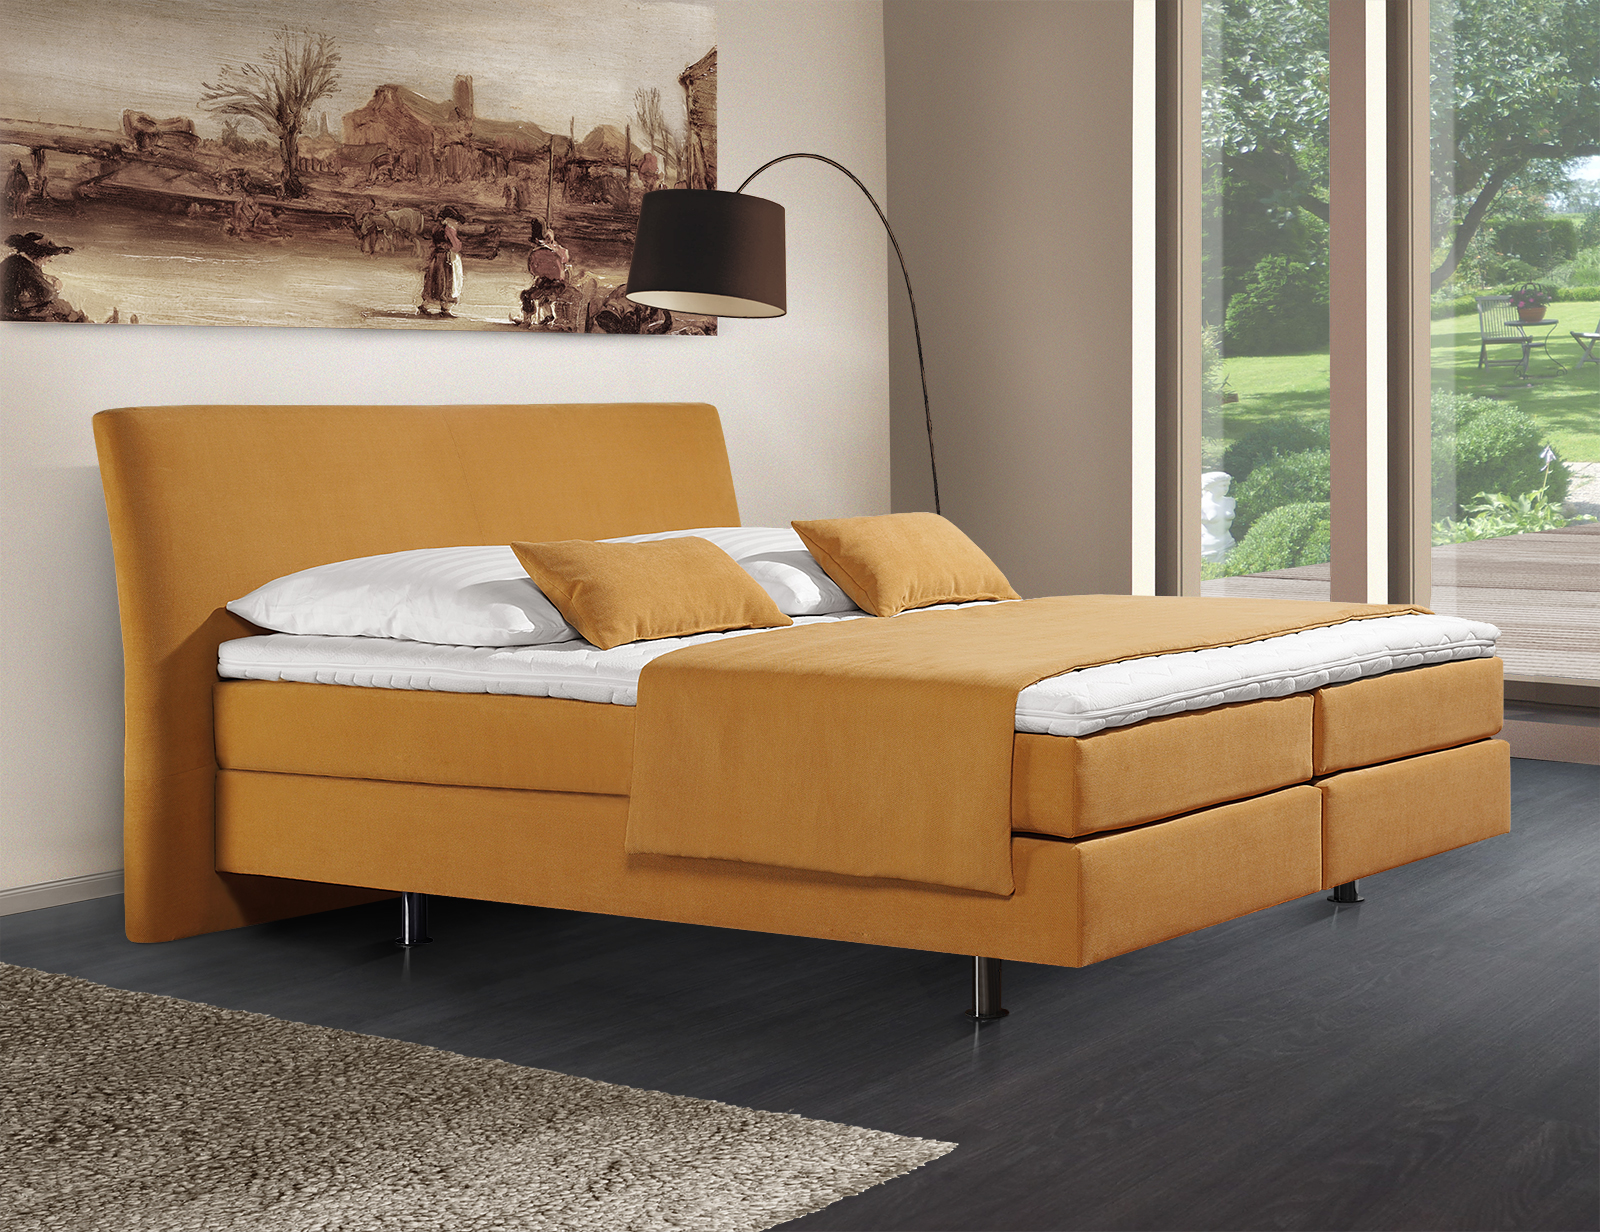 elegantes boxspringbett z b in rot gr e 180x200 pistoia. Black Bedroom Furniture Sets. Home Design Ideas